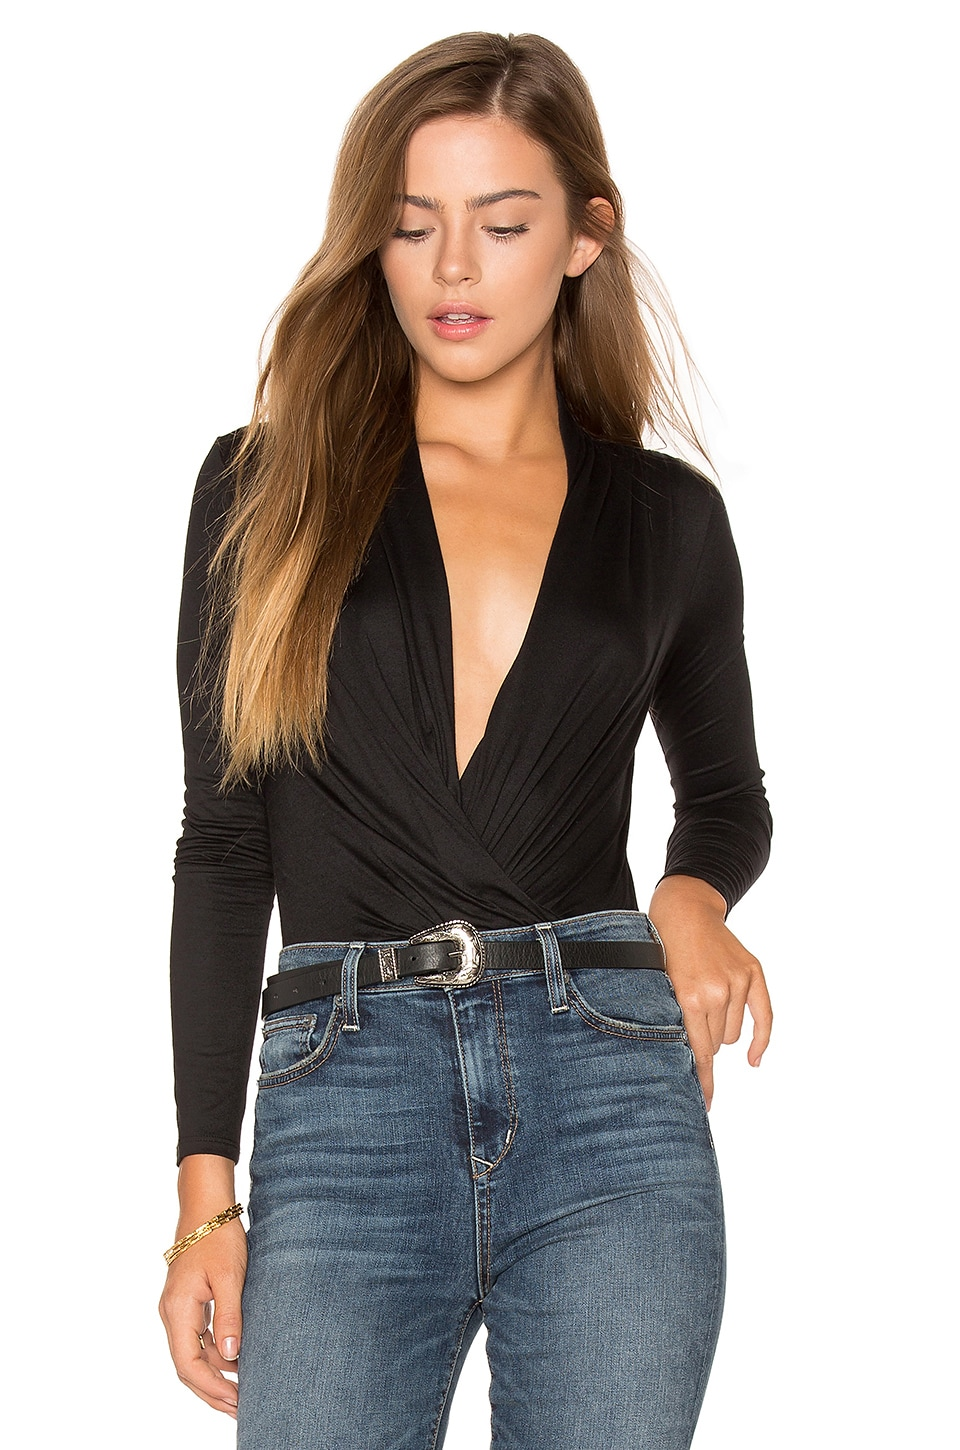 Ella Moss Bella Bodysuit in Black